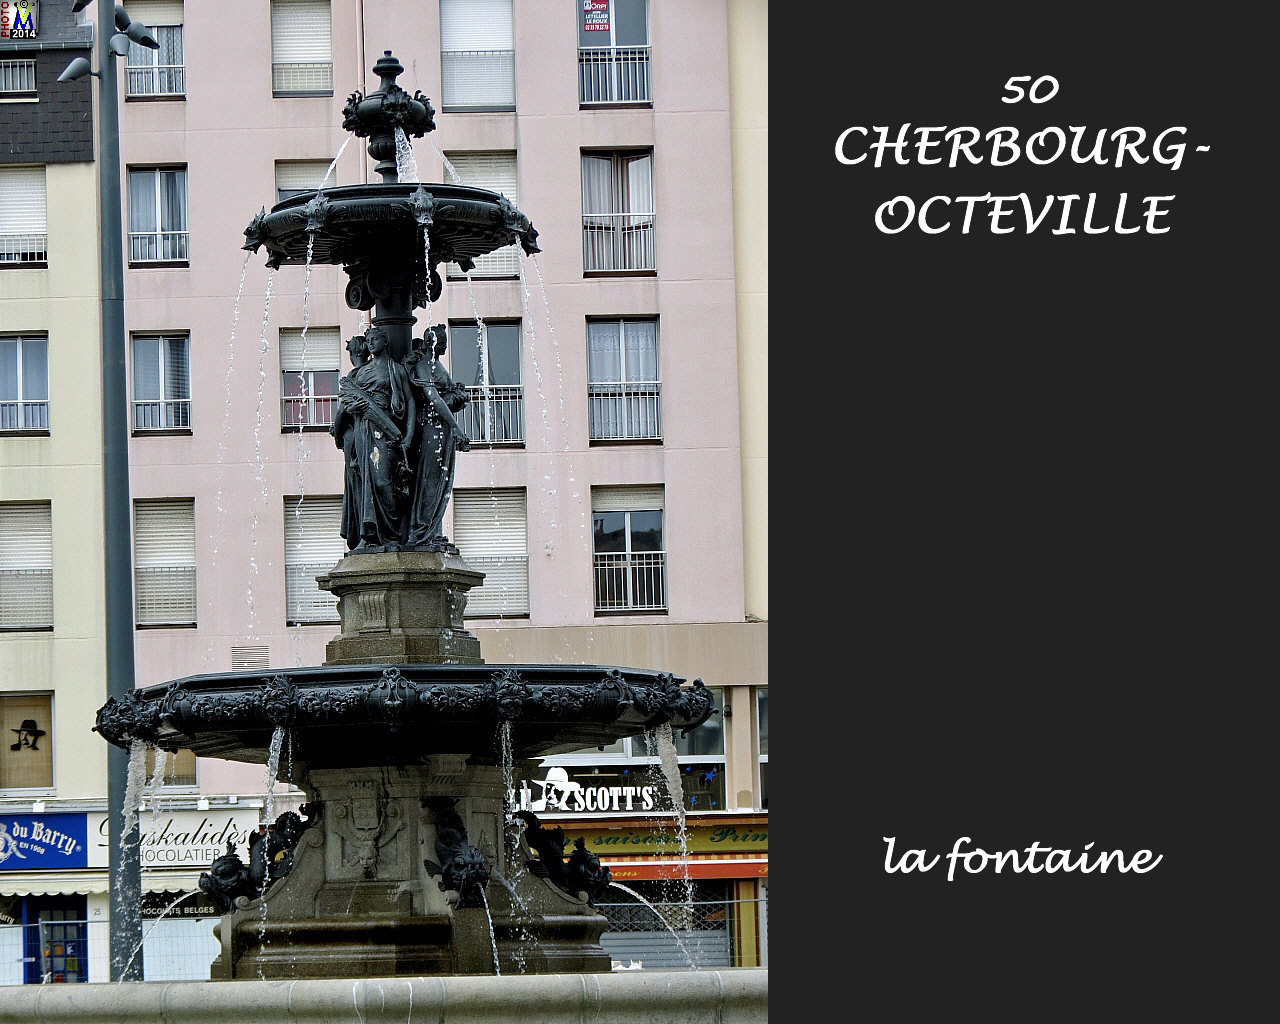 50CHERBOURG_fontaine_100.jpg